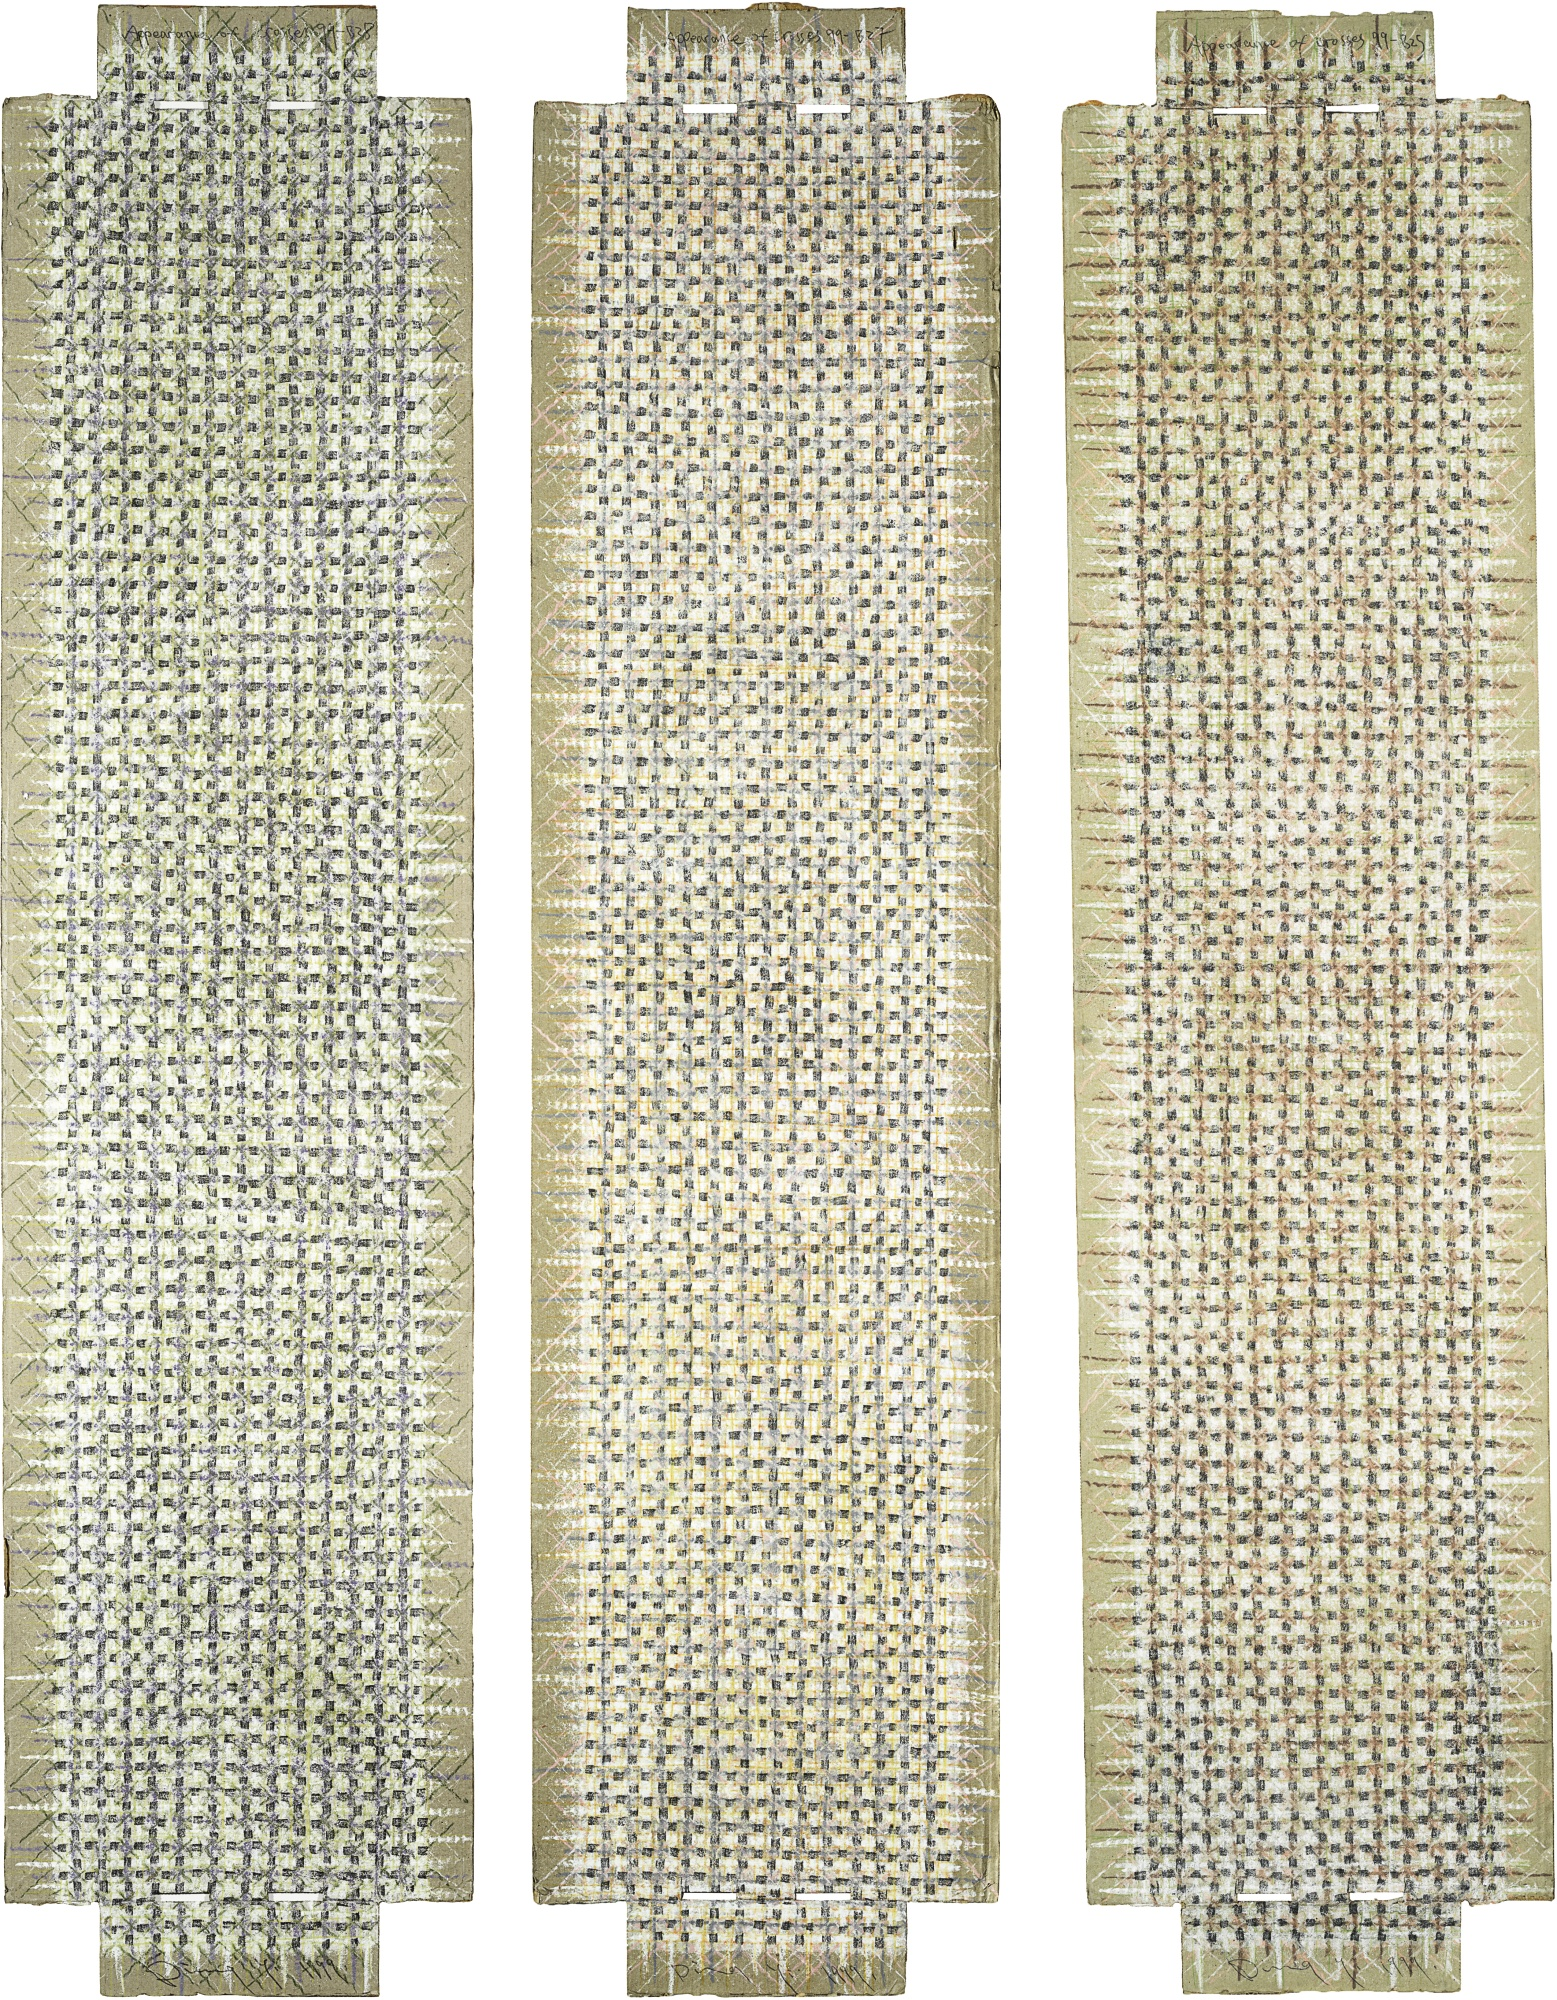 Ding Yi-Appearance Of Crosses B25 B27 And B28 (Three Works)-1999